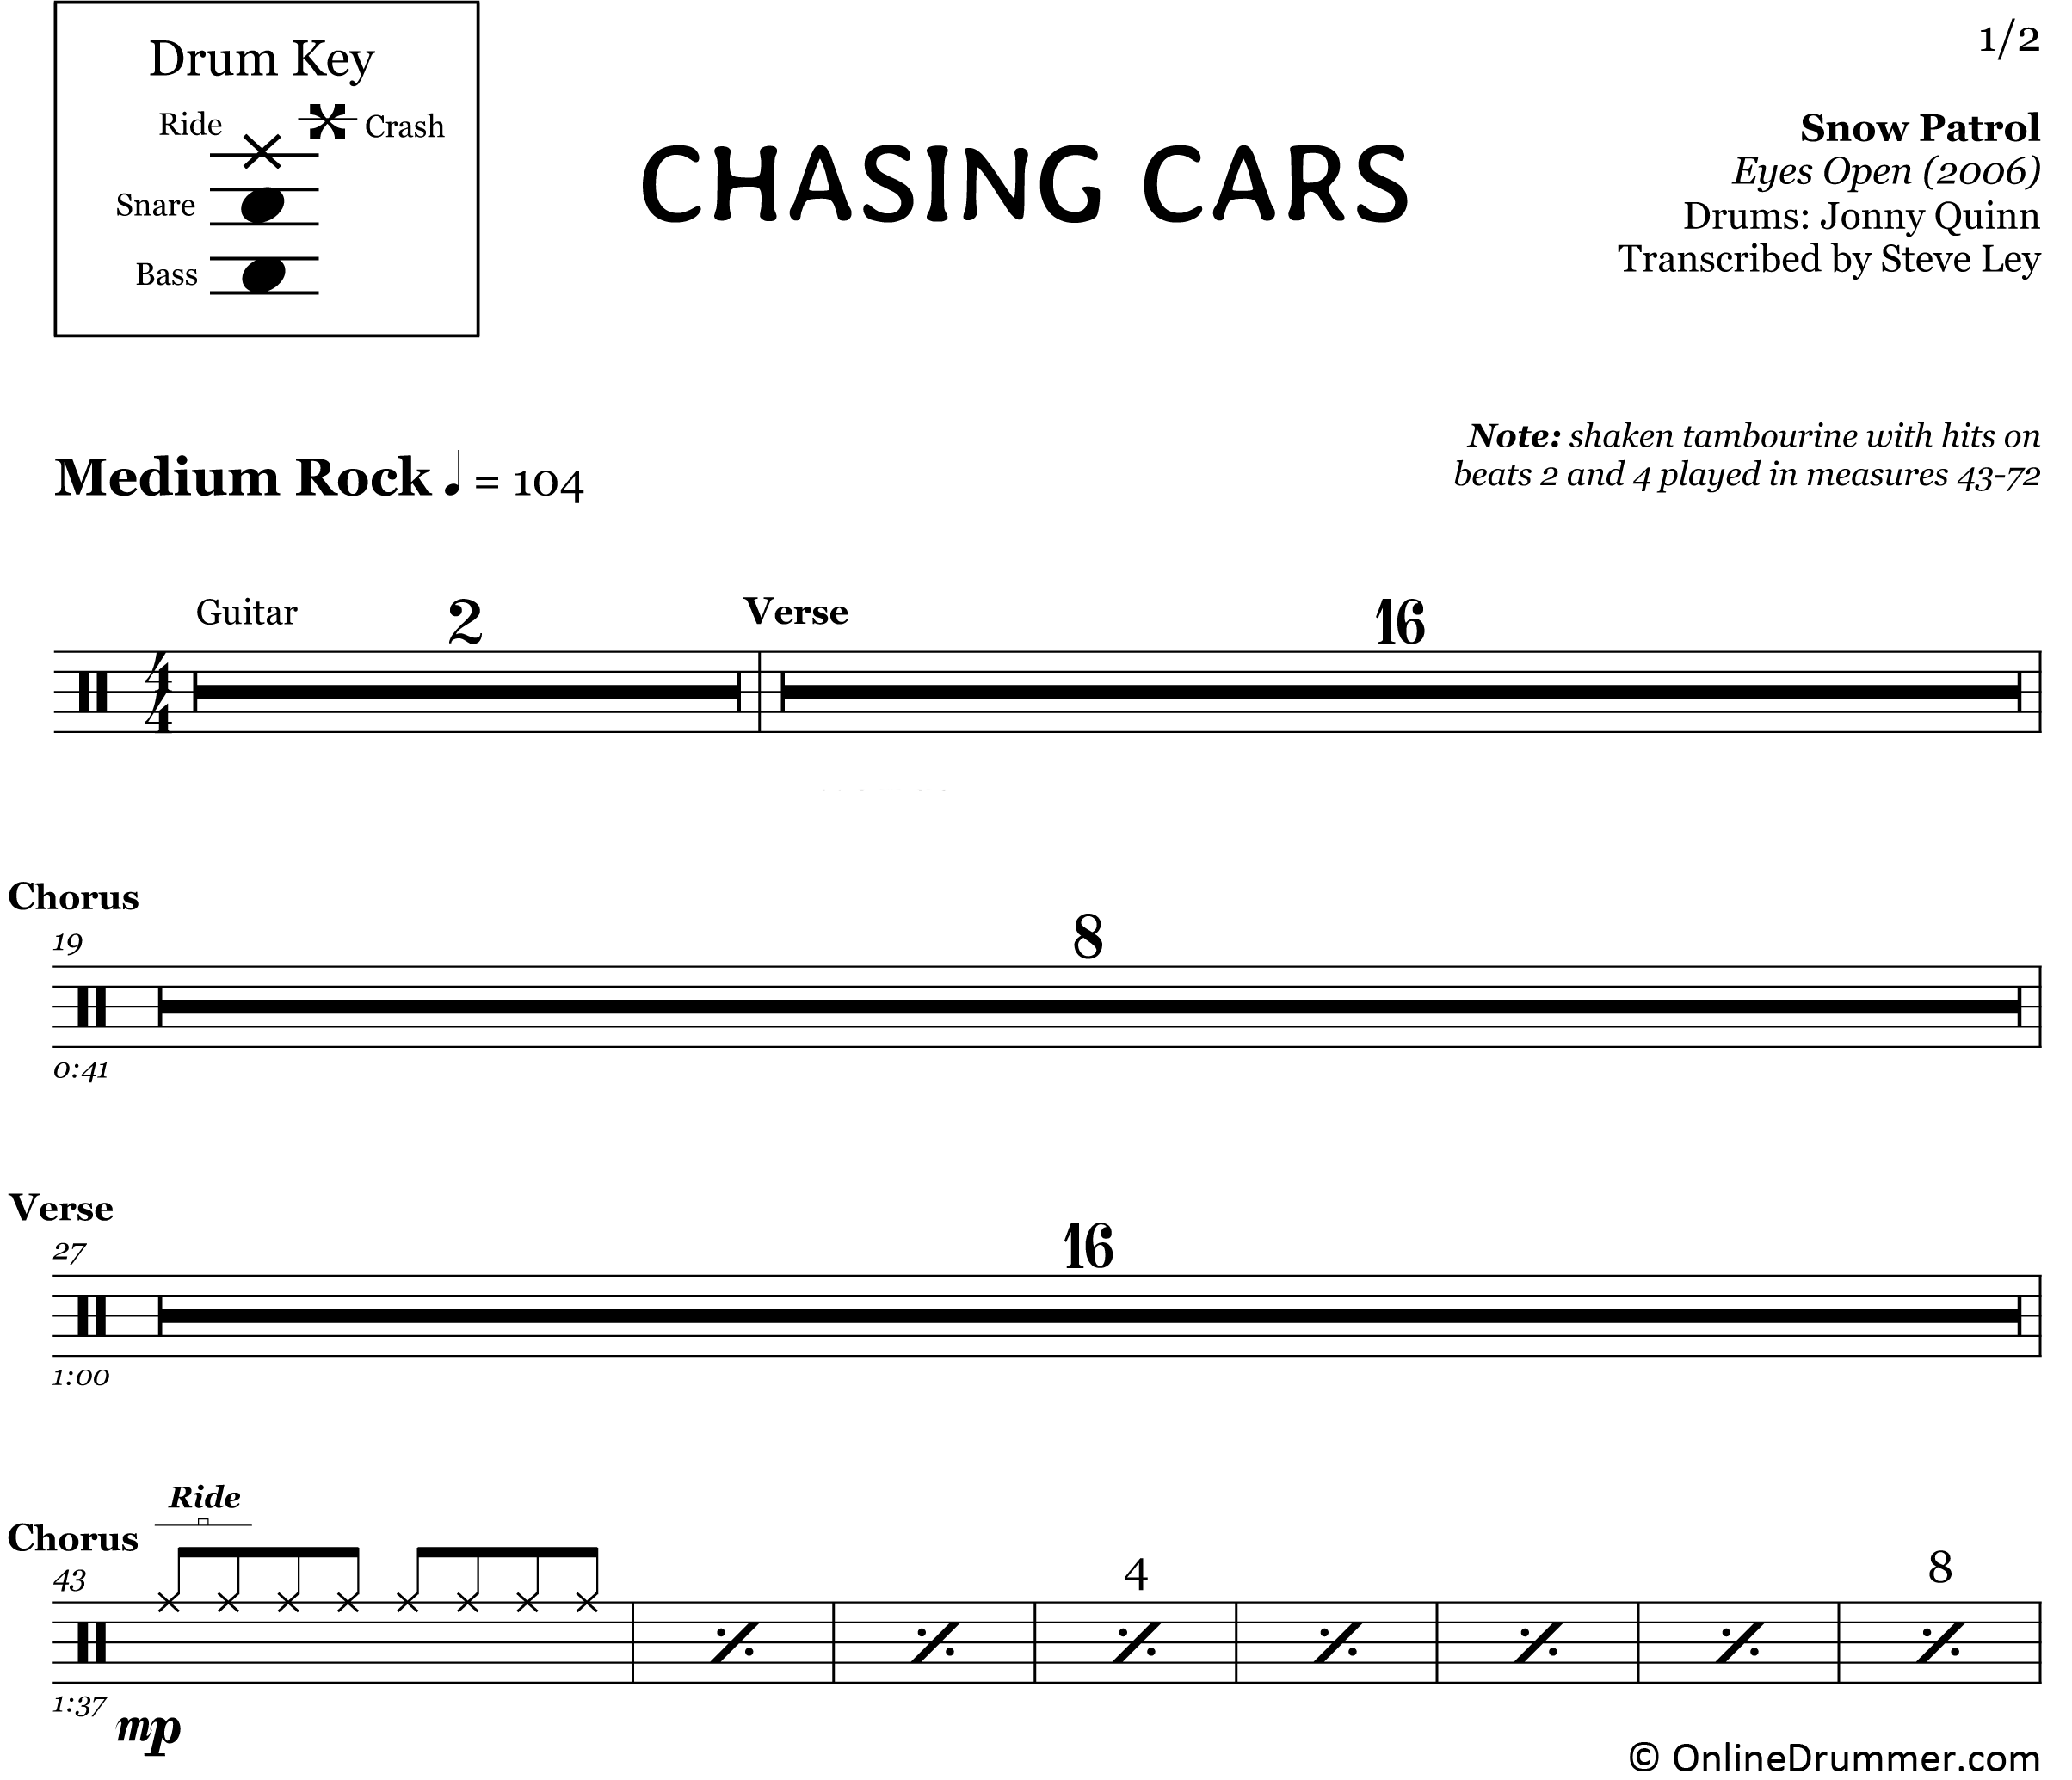 Chasing Cars - Snow Patrol - Drum Sheet Music